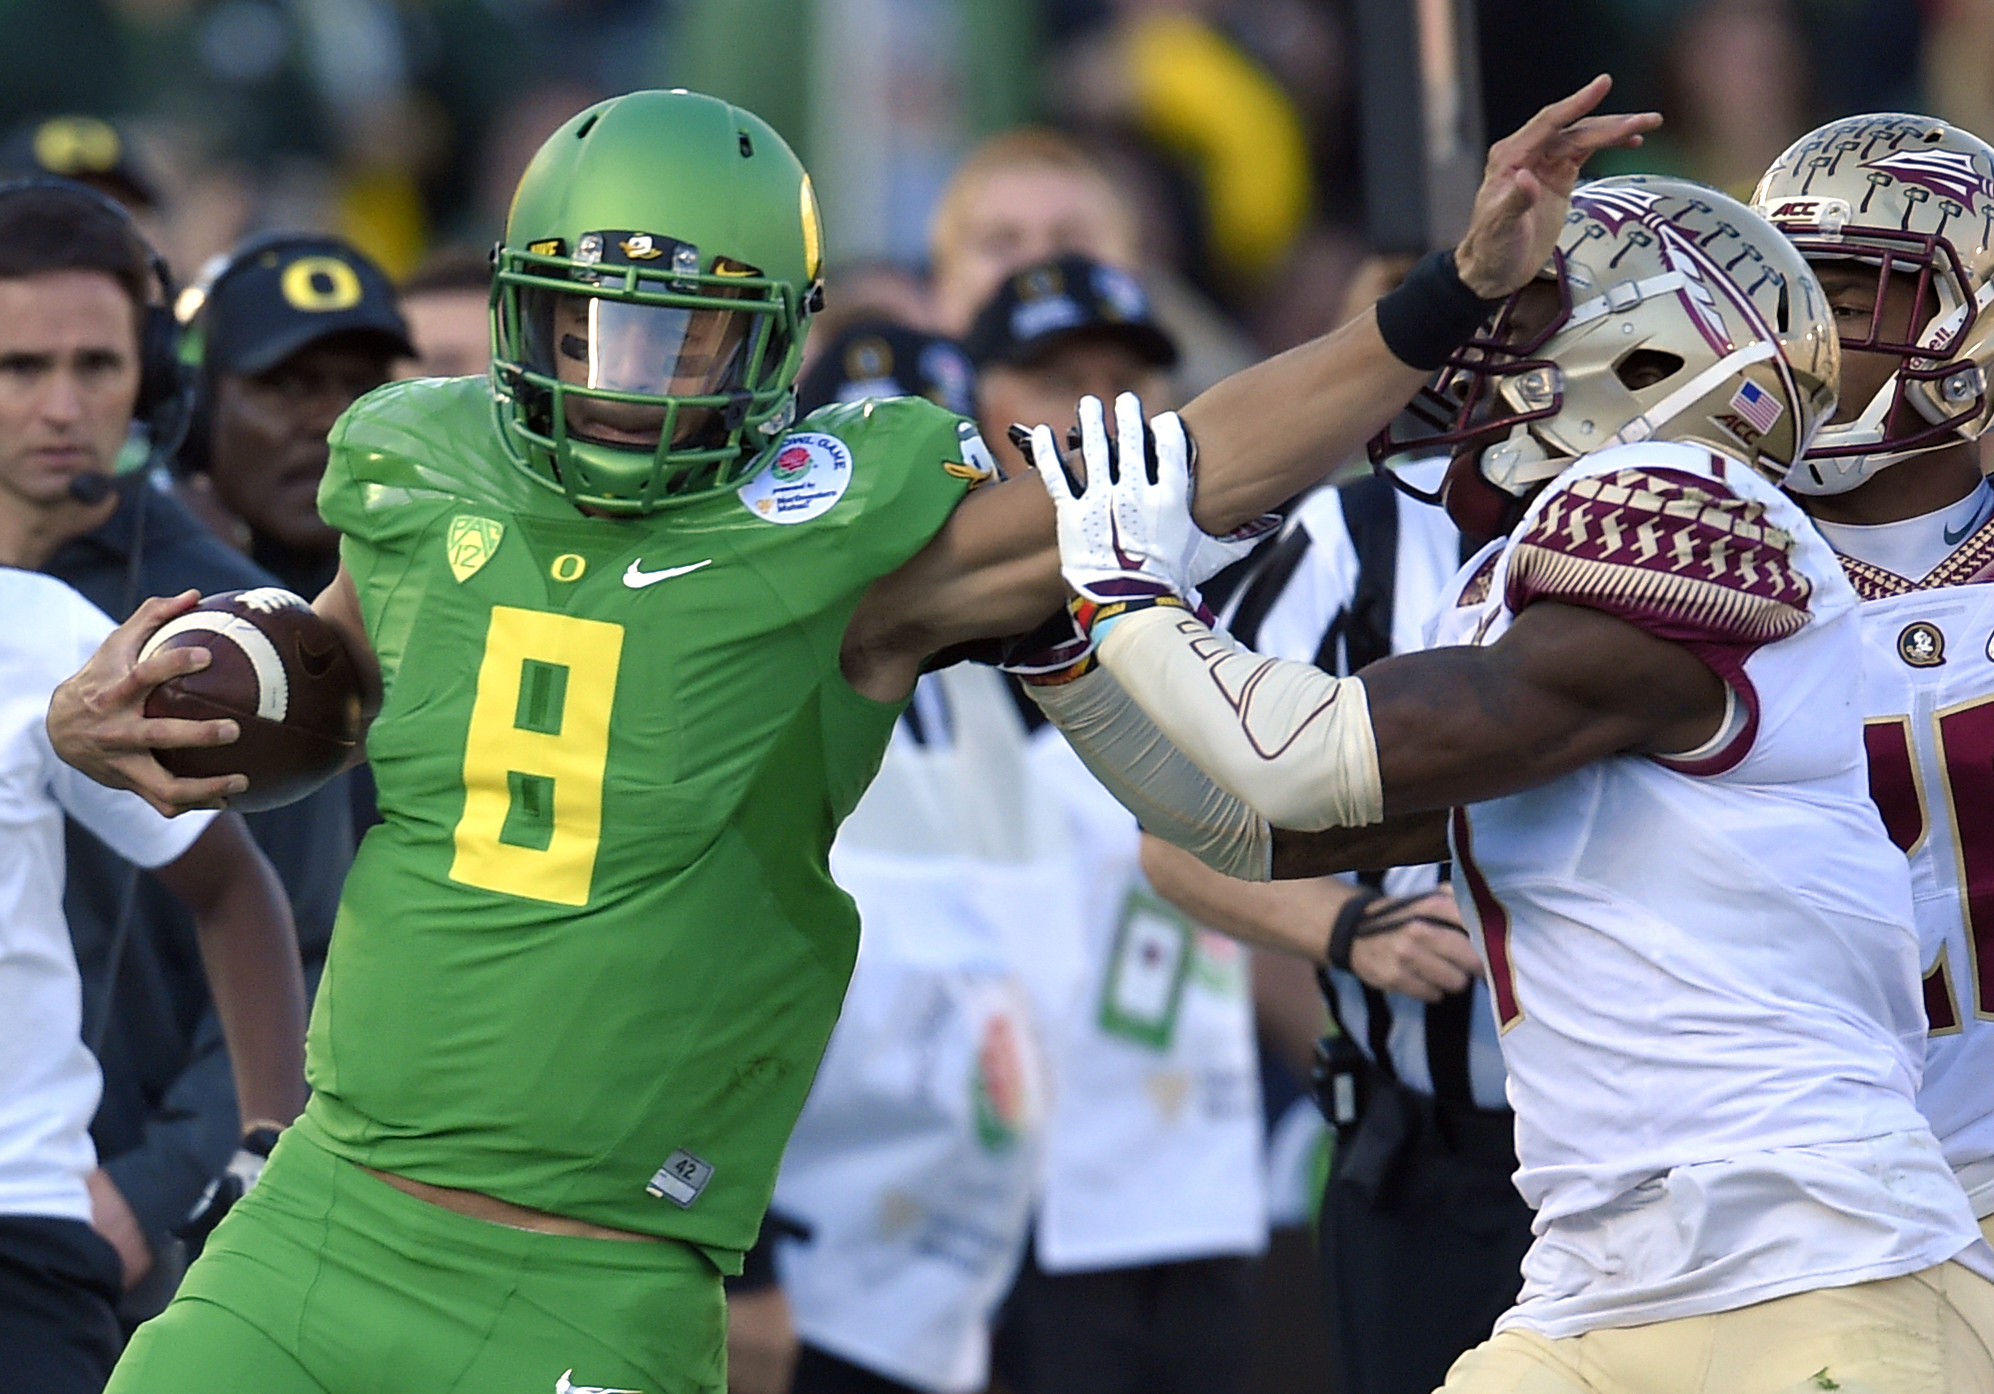 FILE- In this Jan. 1, 2015, file photo, Oregon quarterback Marcus Mariota, left, pushes away Florida State safety Tyler Hunter during the first half of the Rose Bowl NCAA college football playoff semifinal game in Pasadena, Calif. There will be several no